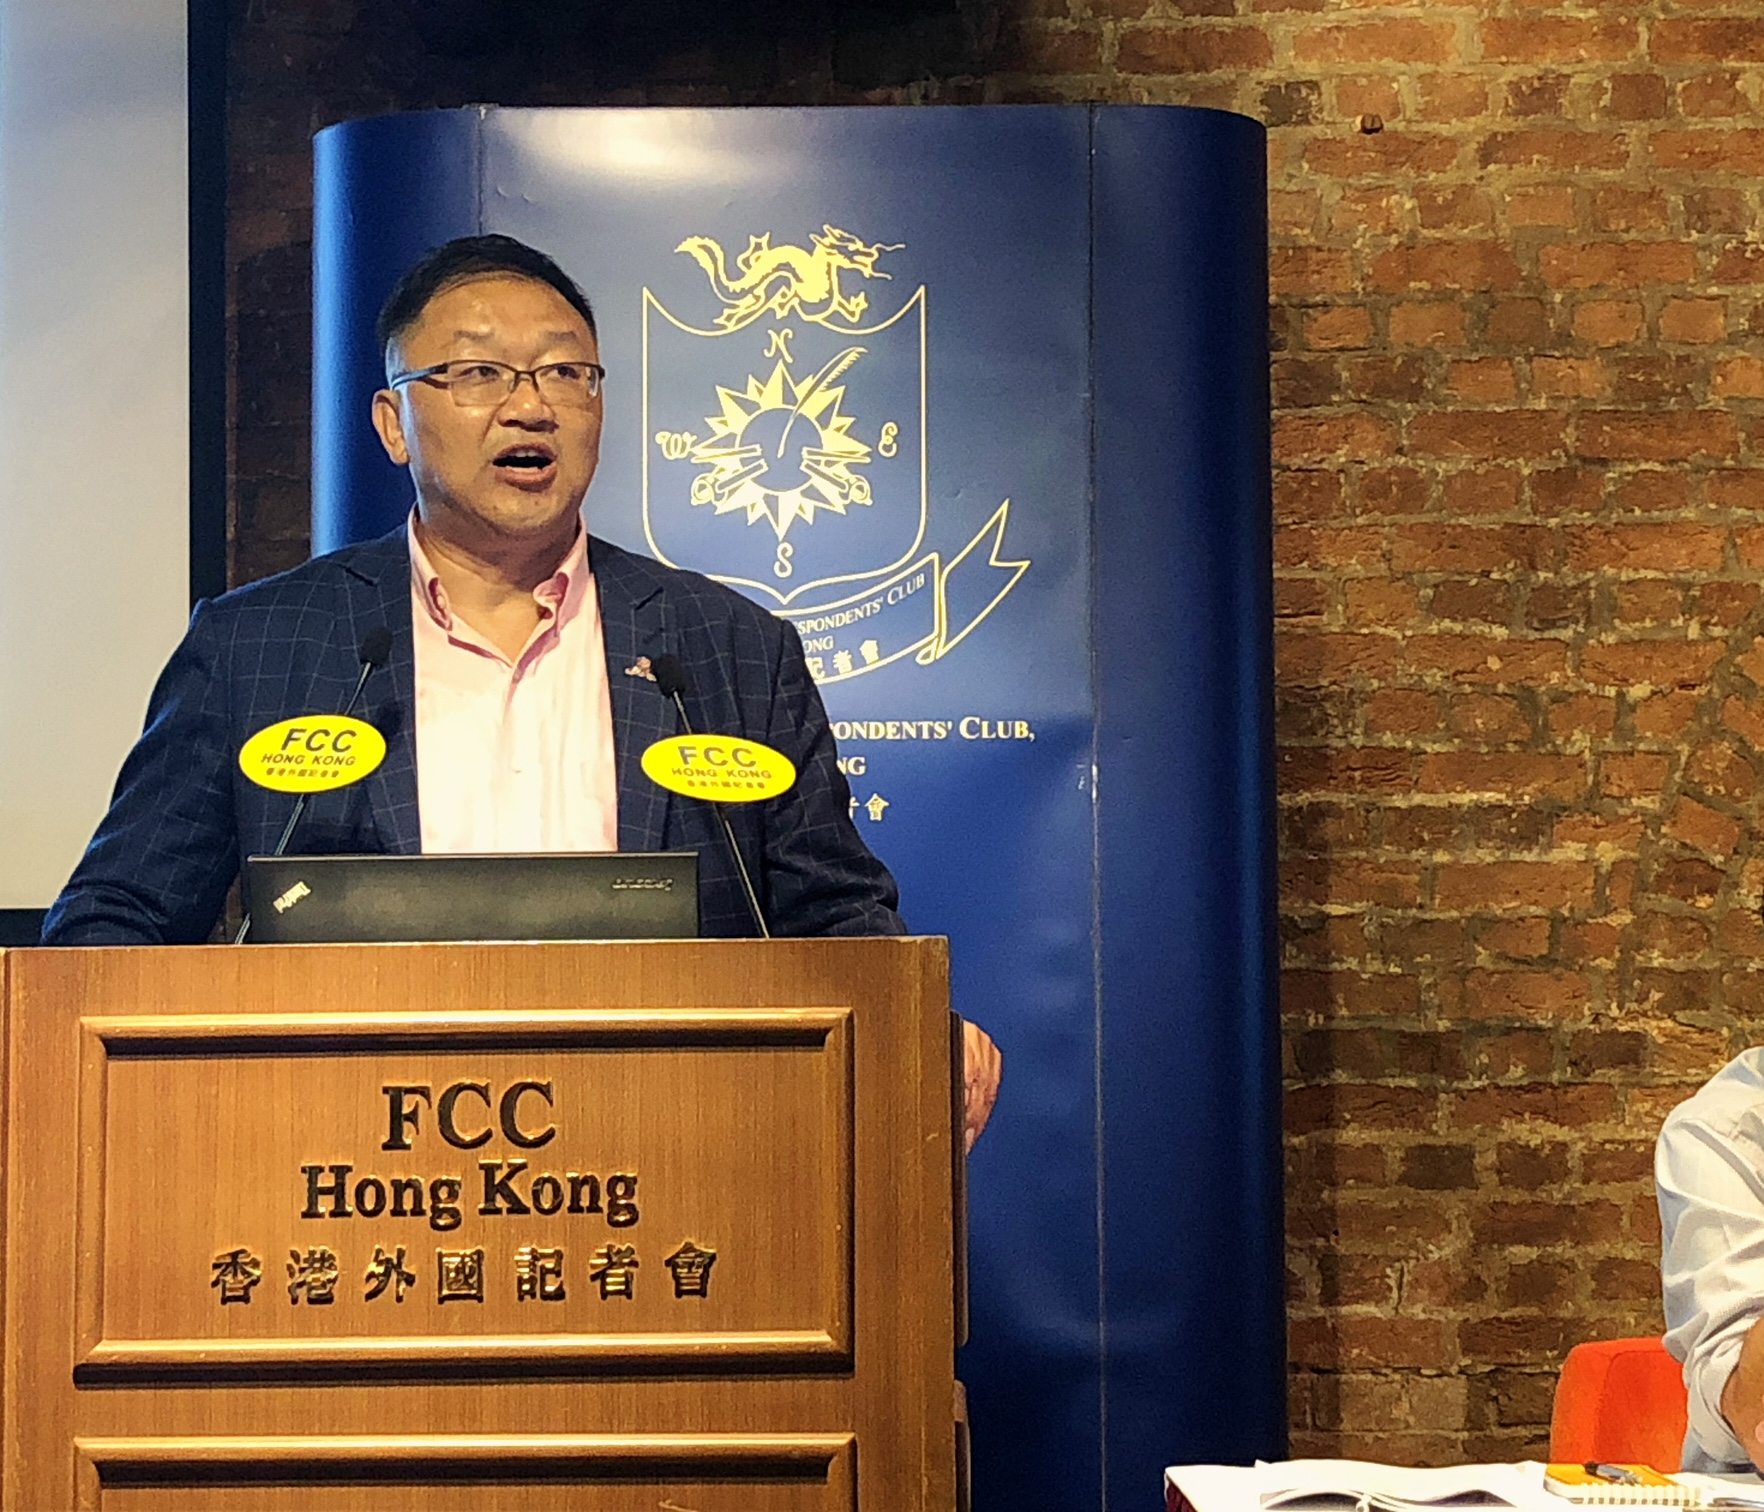 Professor Kam-Fai Wong gave a glimpse of the future at the FCC. Photo: Sarah Graham/FCC